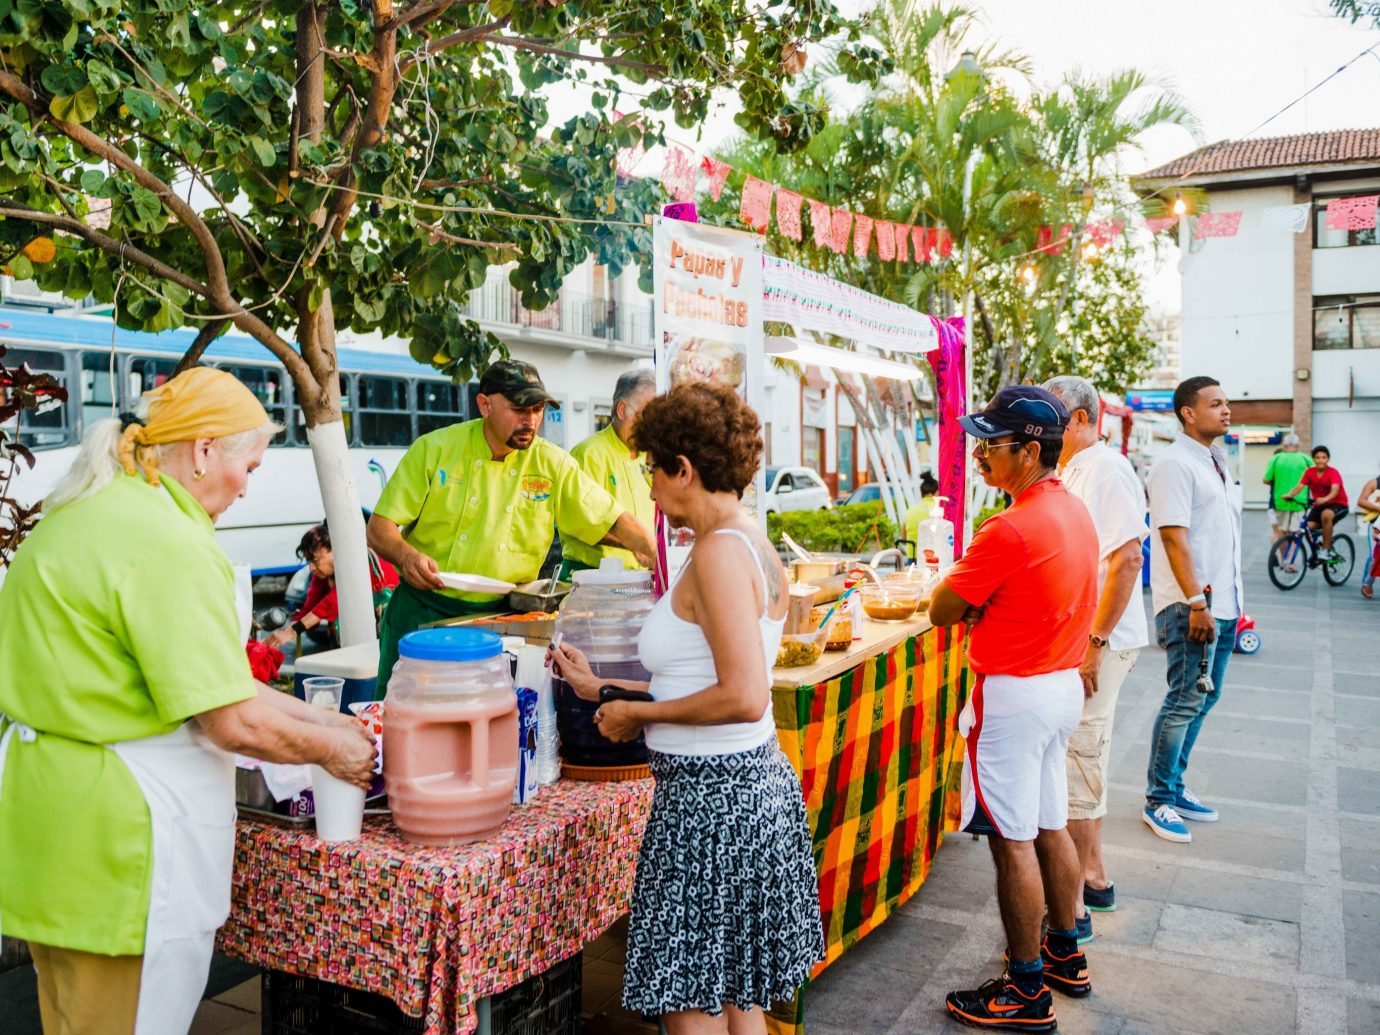 Food + Drink Mexico Puerto Vallarta street recreation marketplace market leisure tourism food City